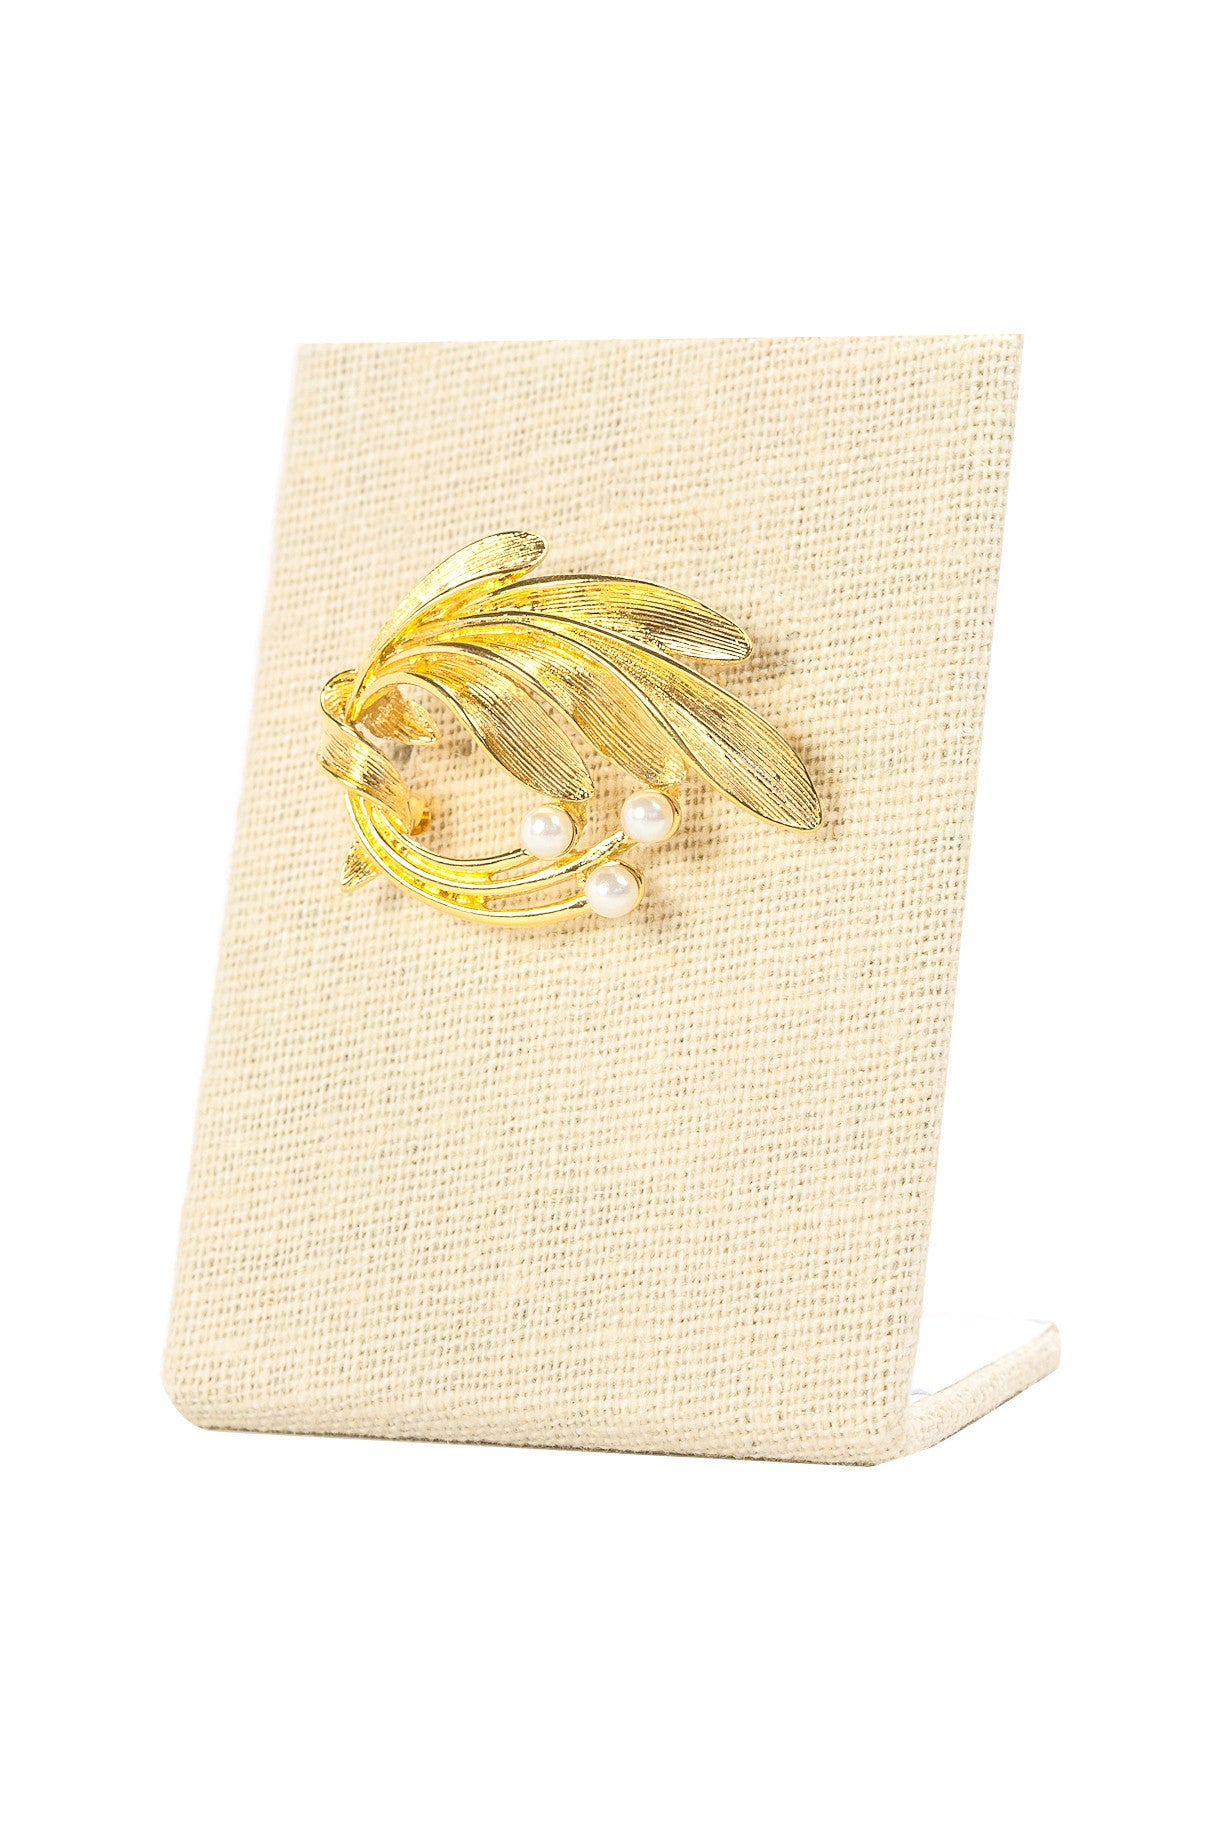 50's__Vintage__Pearl Feather Brooch